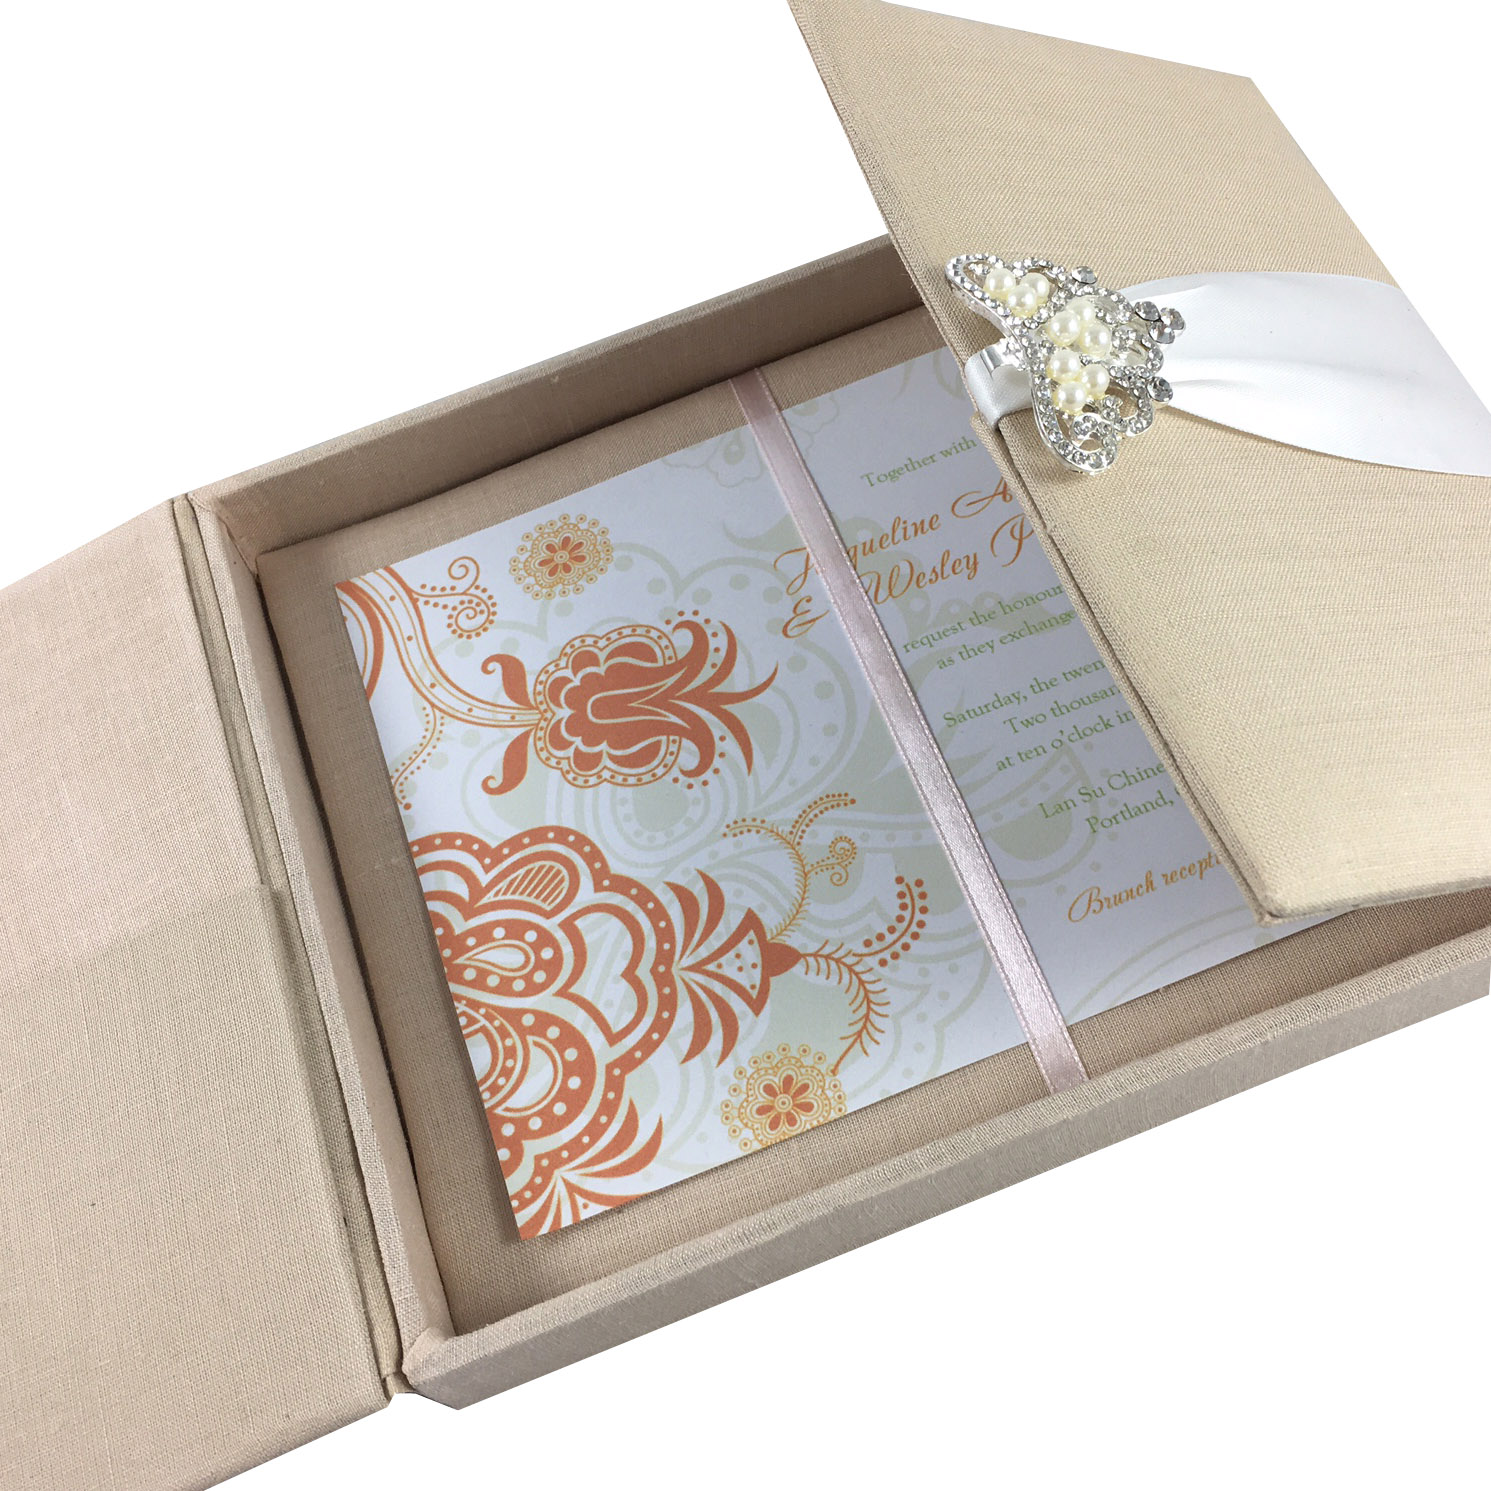 Wedding Card Holder.Large Hand Crafted Linen Box For Wedding Invitation Cards With Pocket Holder